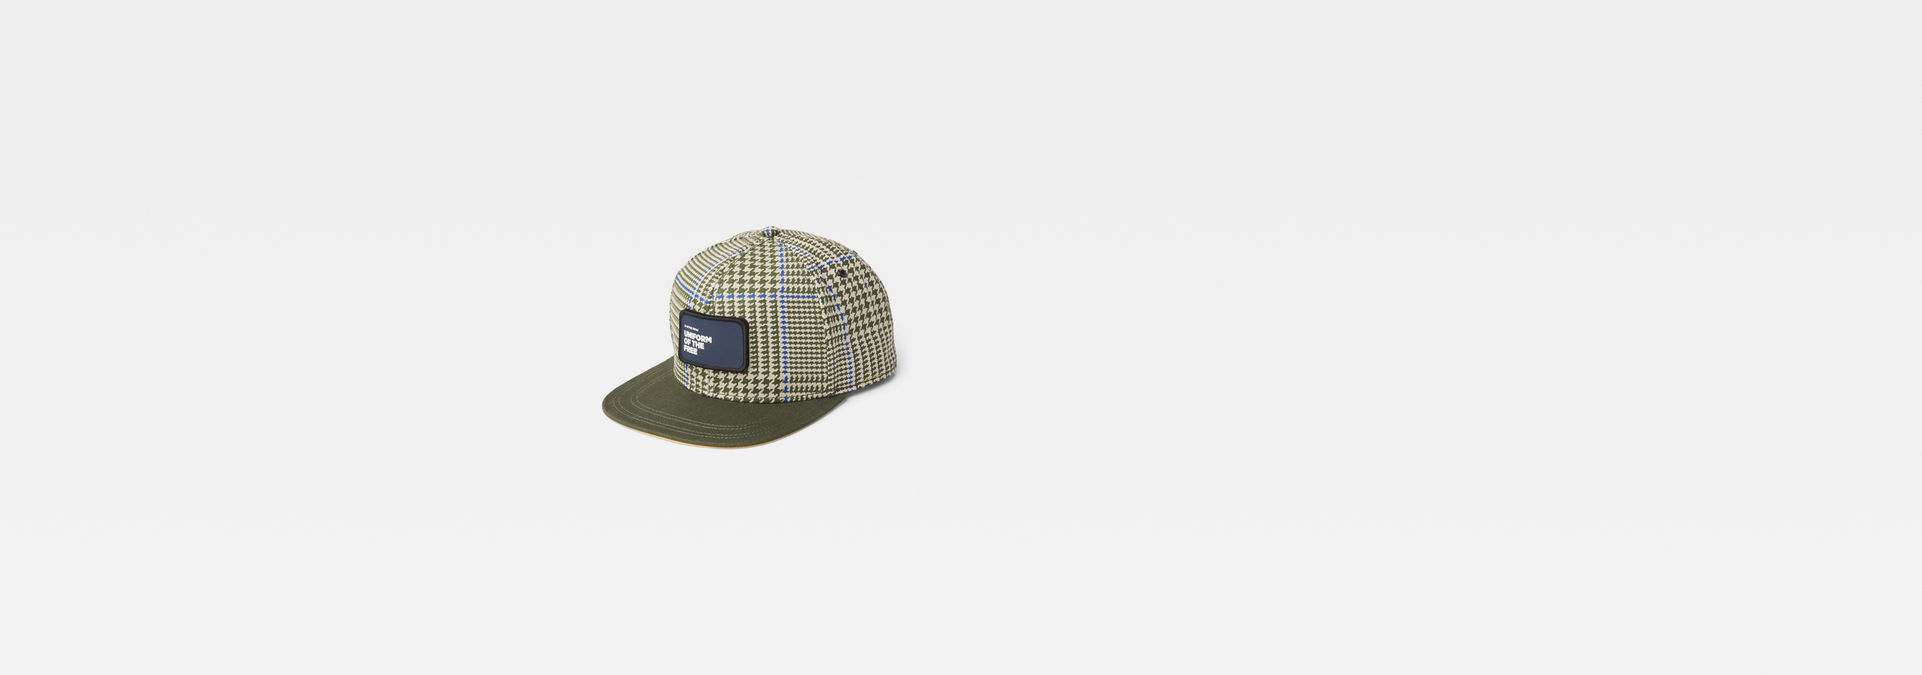 f5b15c5940197 Data Snapback Cap | Marble/Mercury | Men | G-Star RAW®